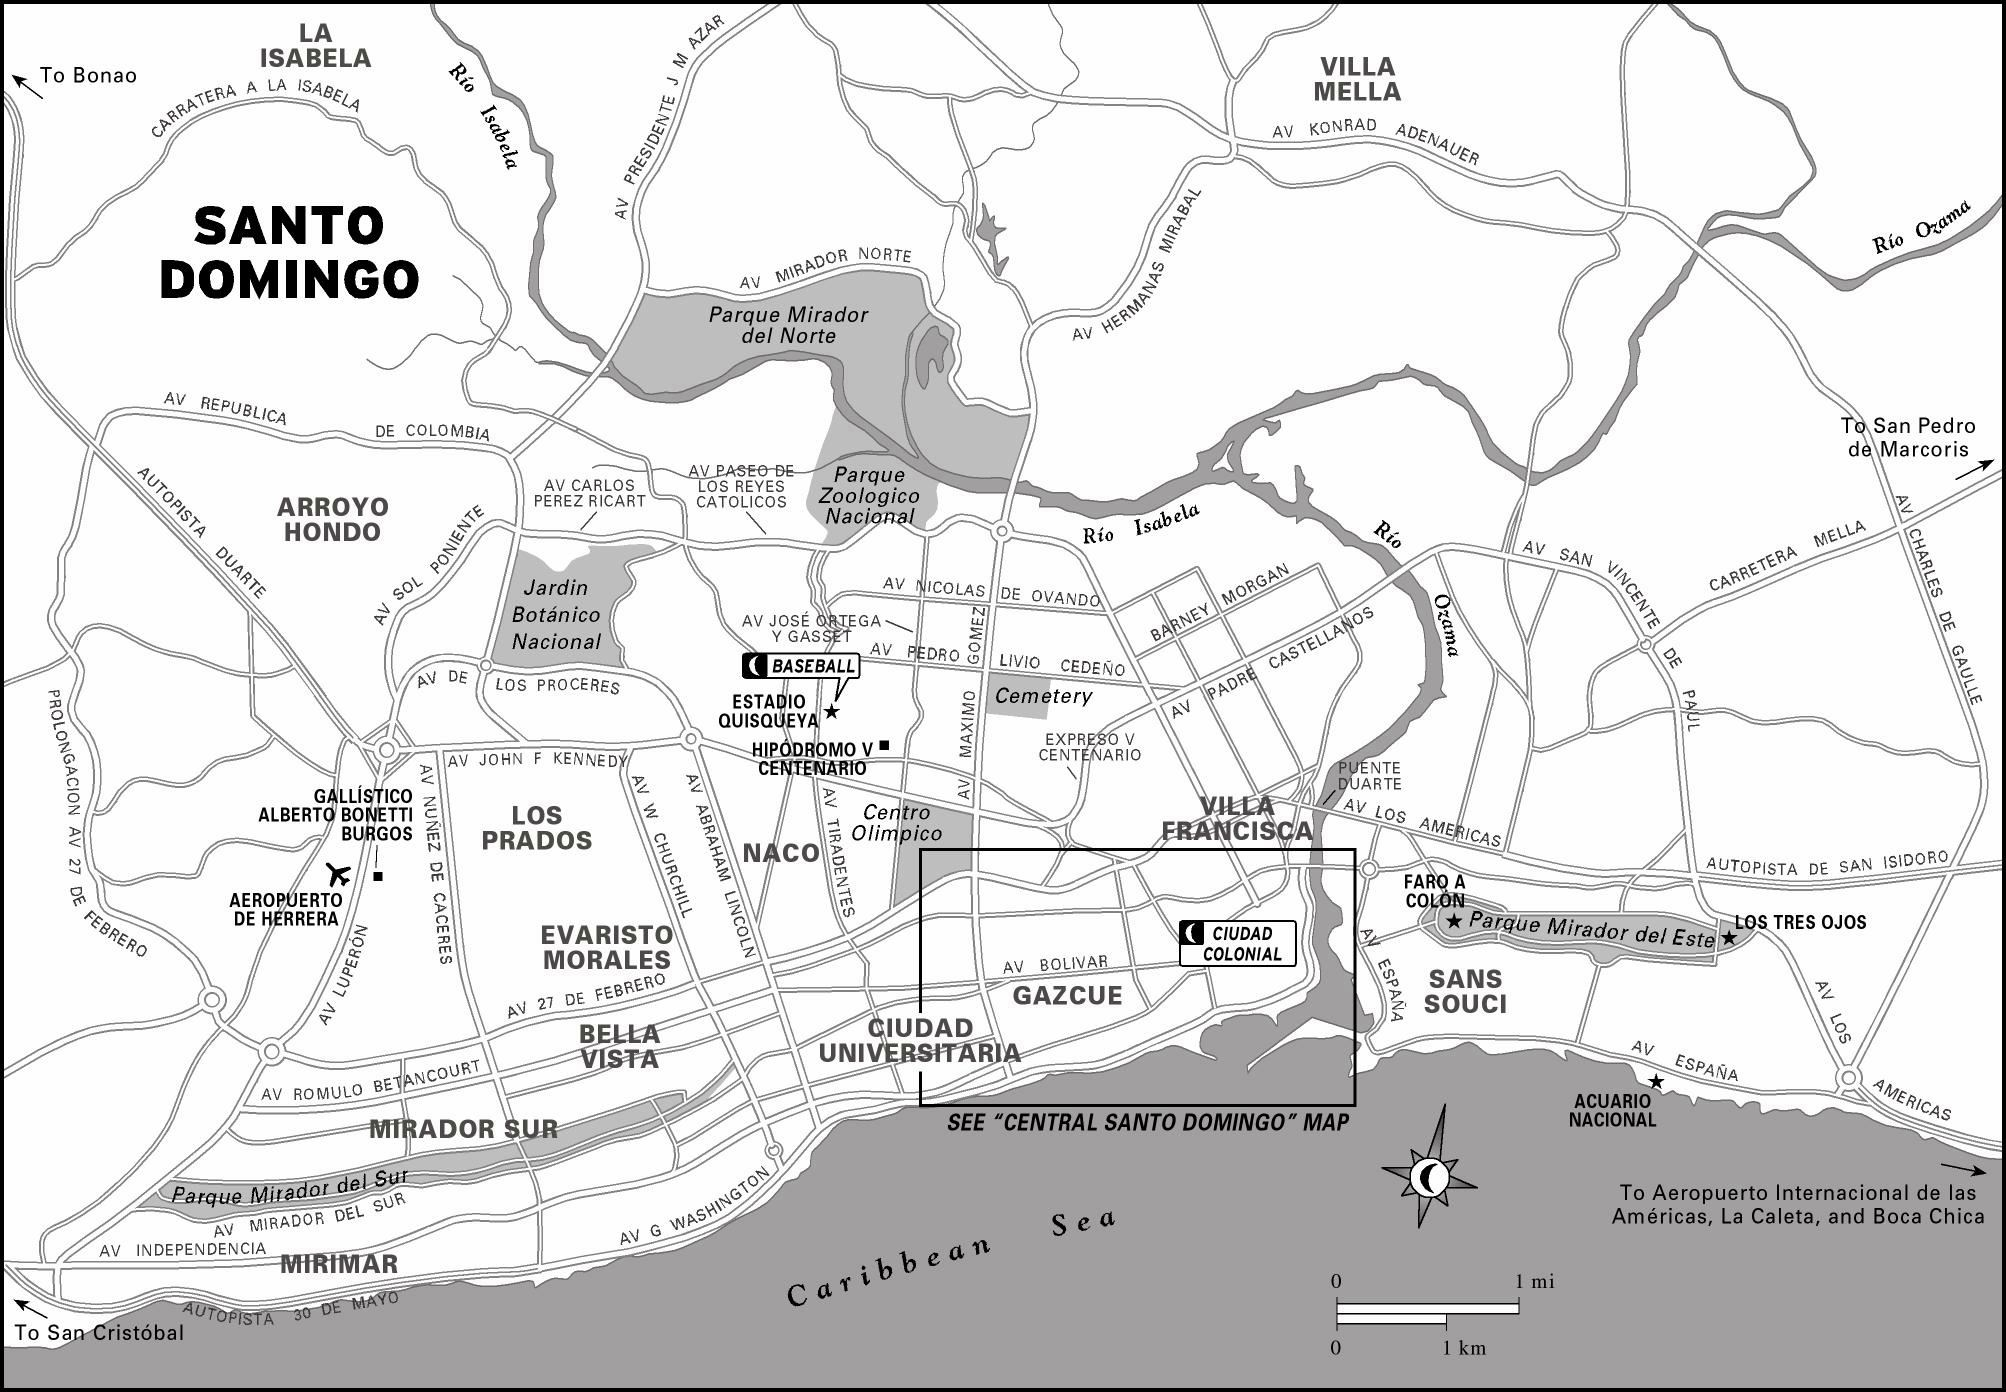 Large Santo Domingo Maps for Free Download and Print High